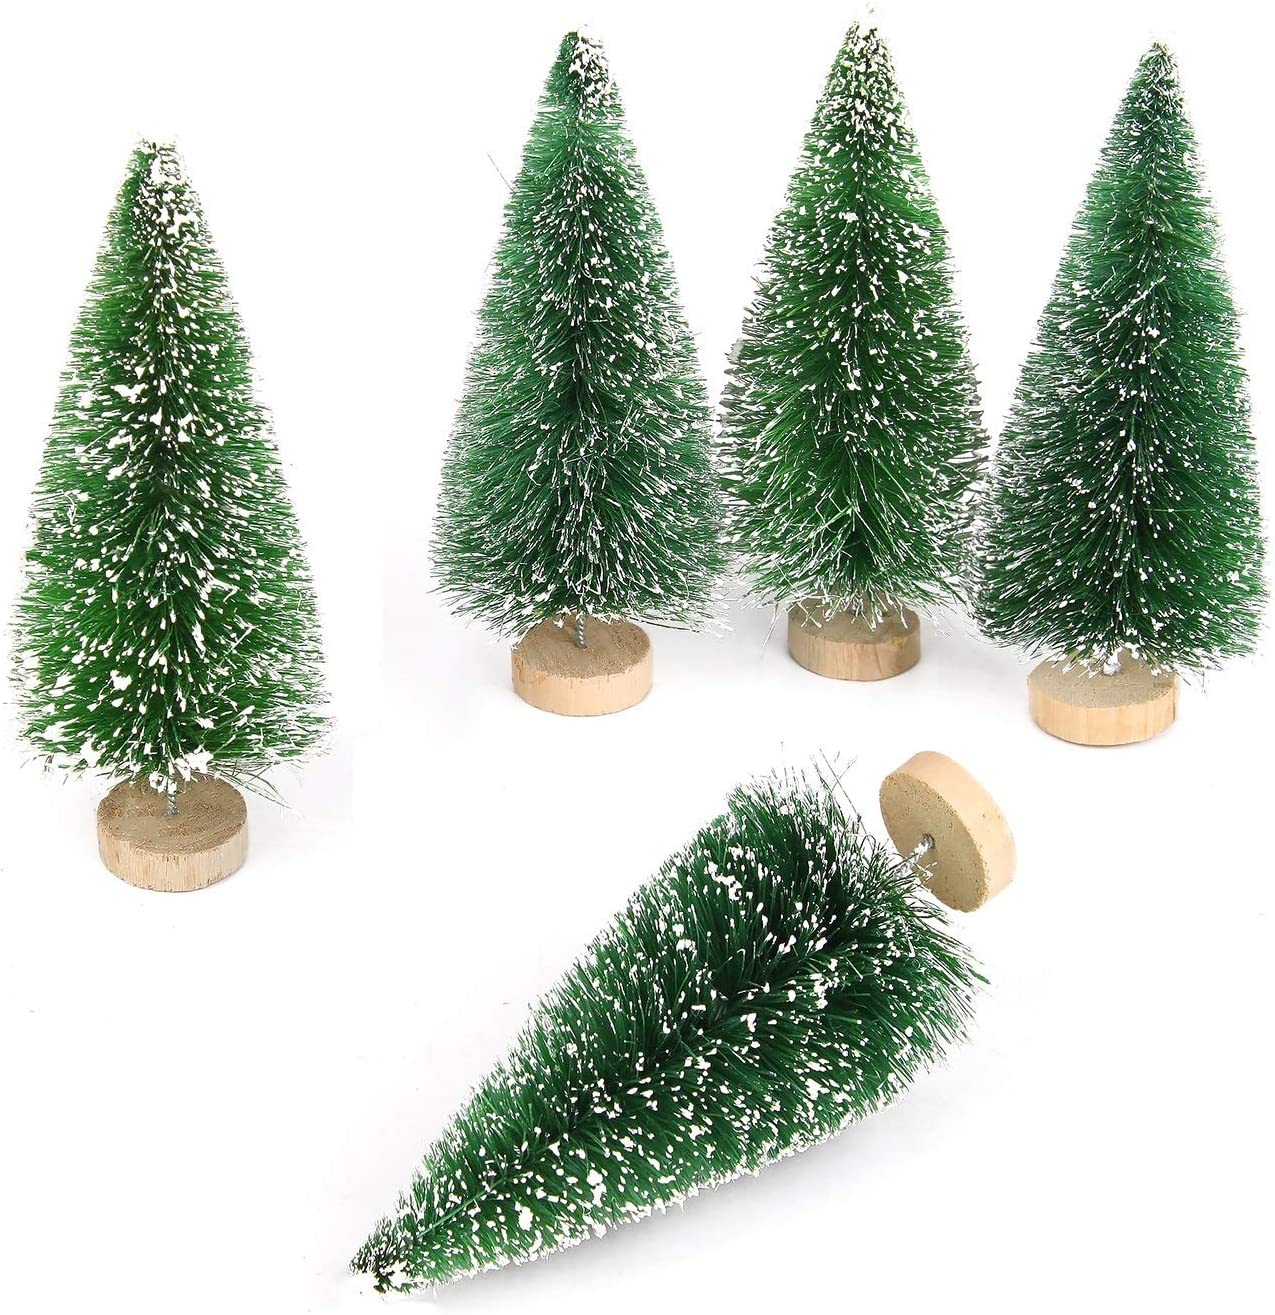 Set of 5 Bottle Brush Christmas Trees 11 inch Green Pine Brown Shades New